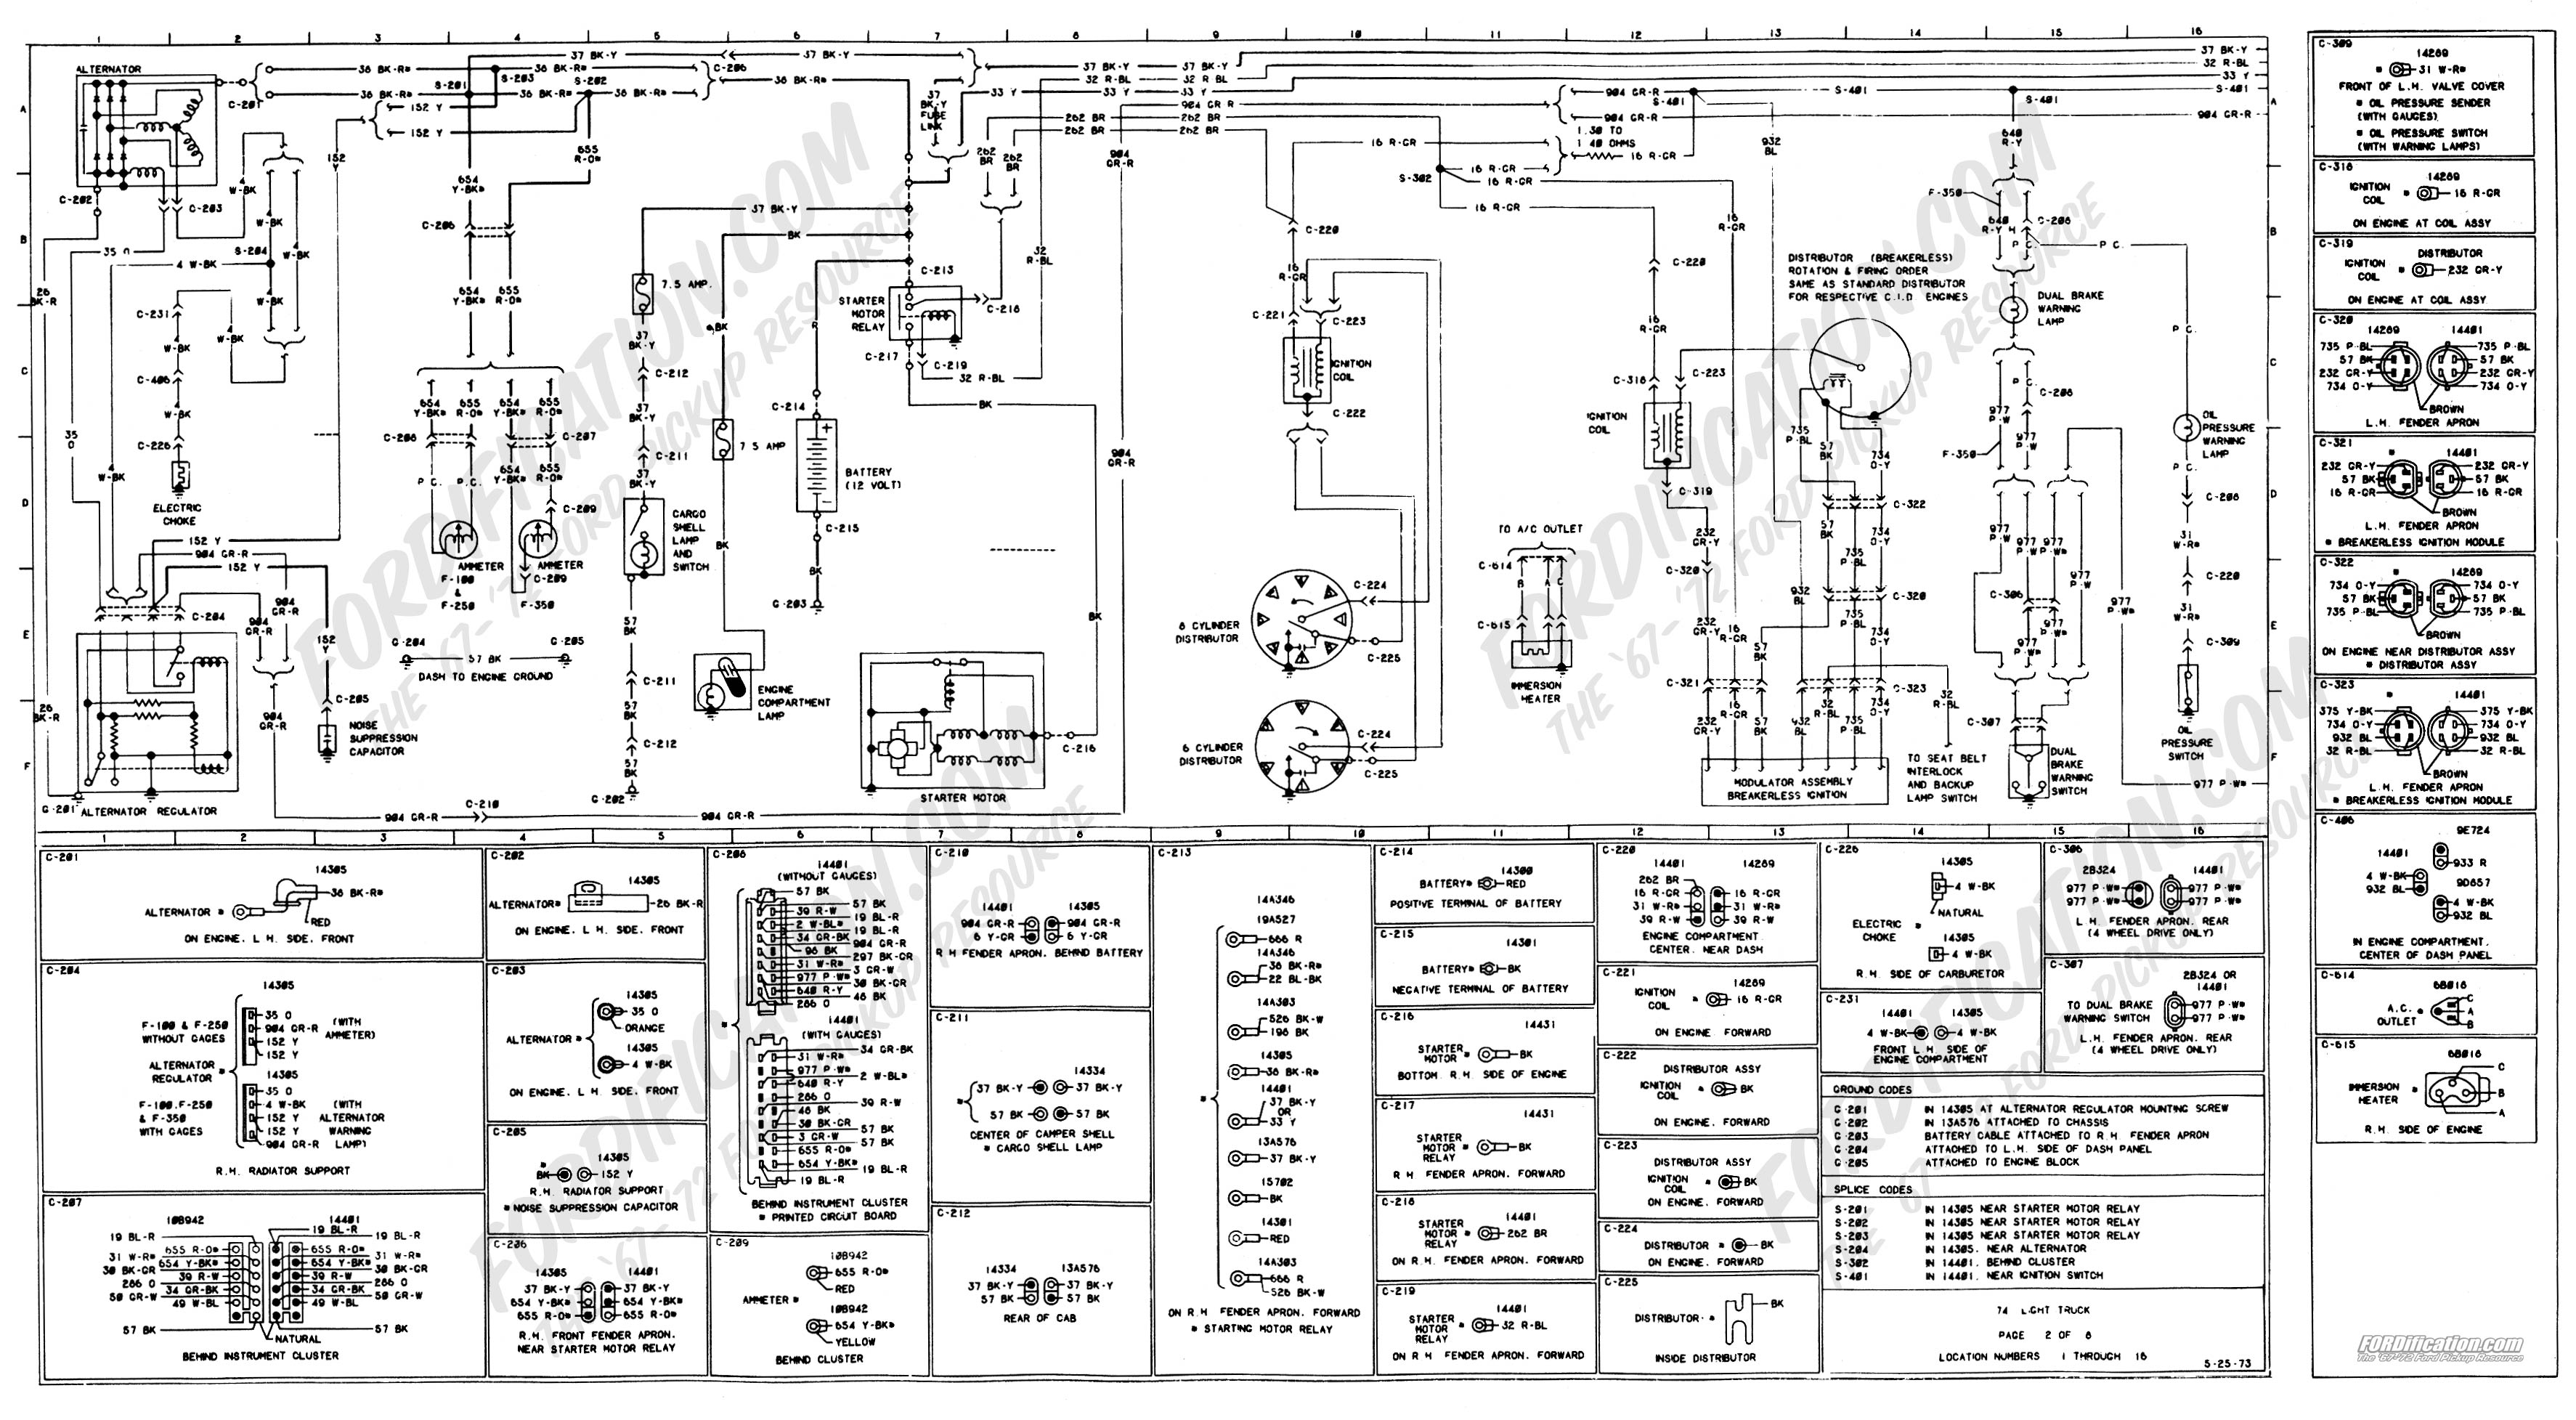 1973 f250 wiring diagram more wiring diagram 1973 Ford Ranchero Wiring-Diagram Fuse Box